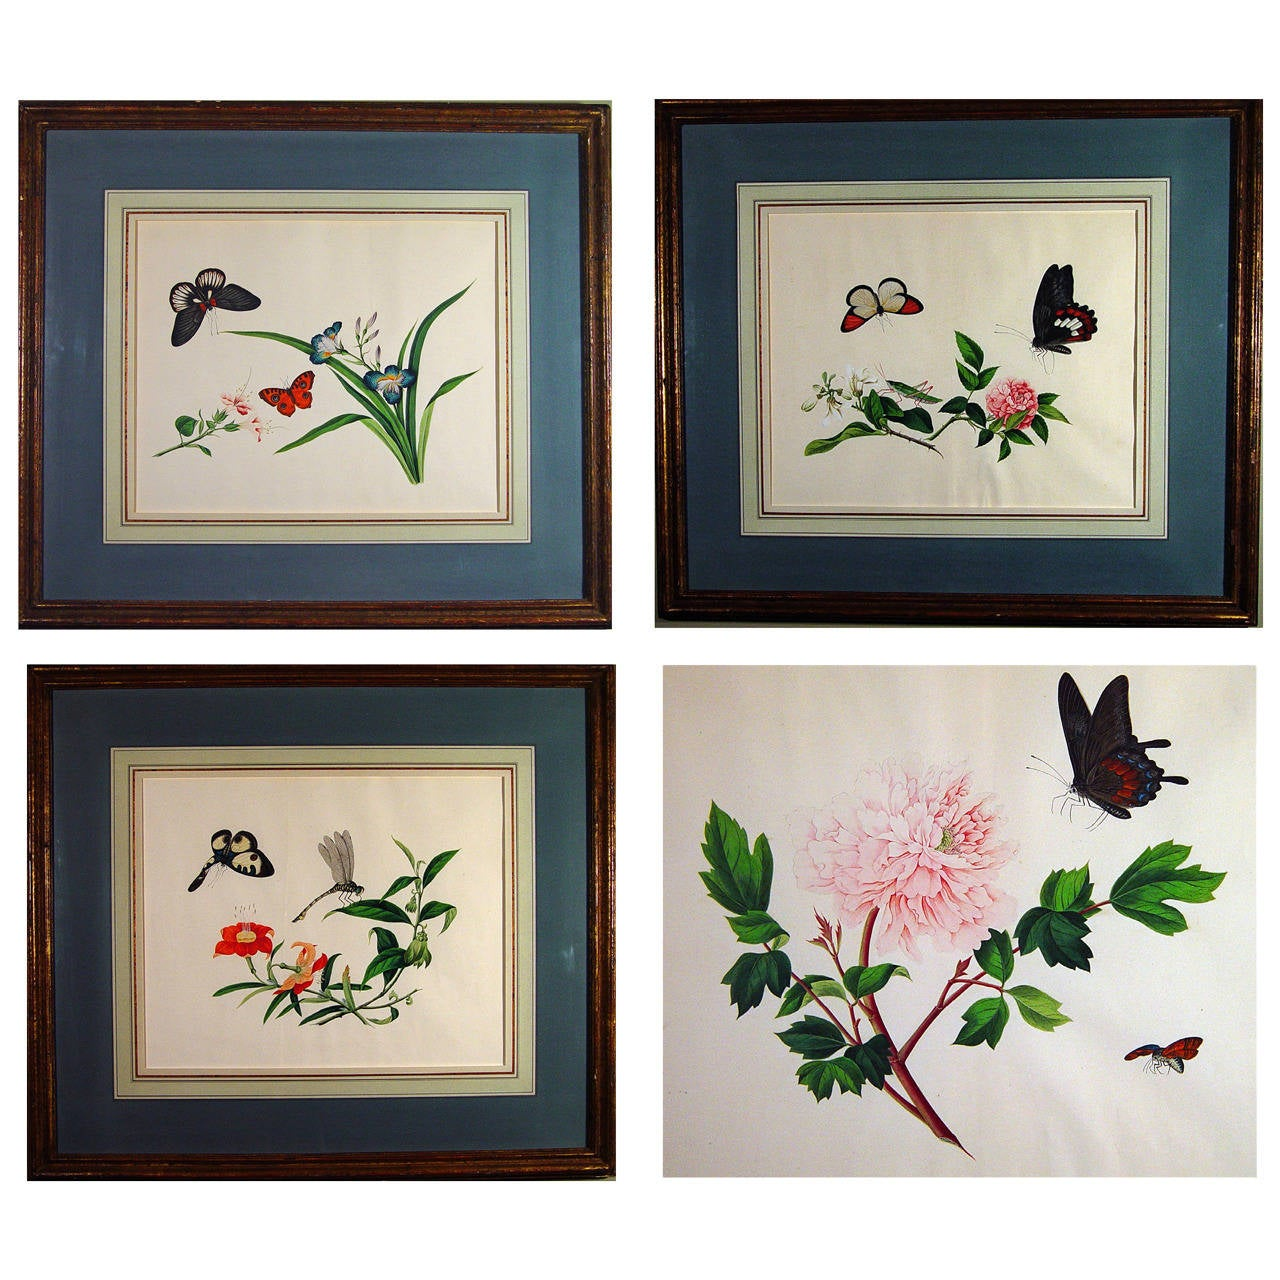 Chinese Botanical Large Watercolours on Paper, circa 1800